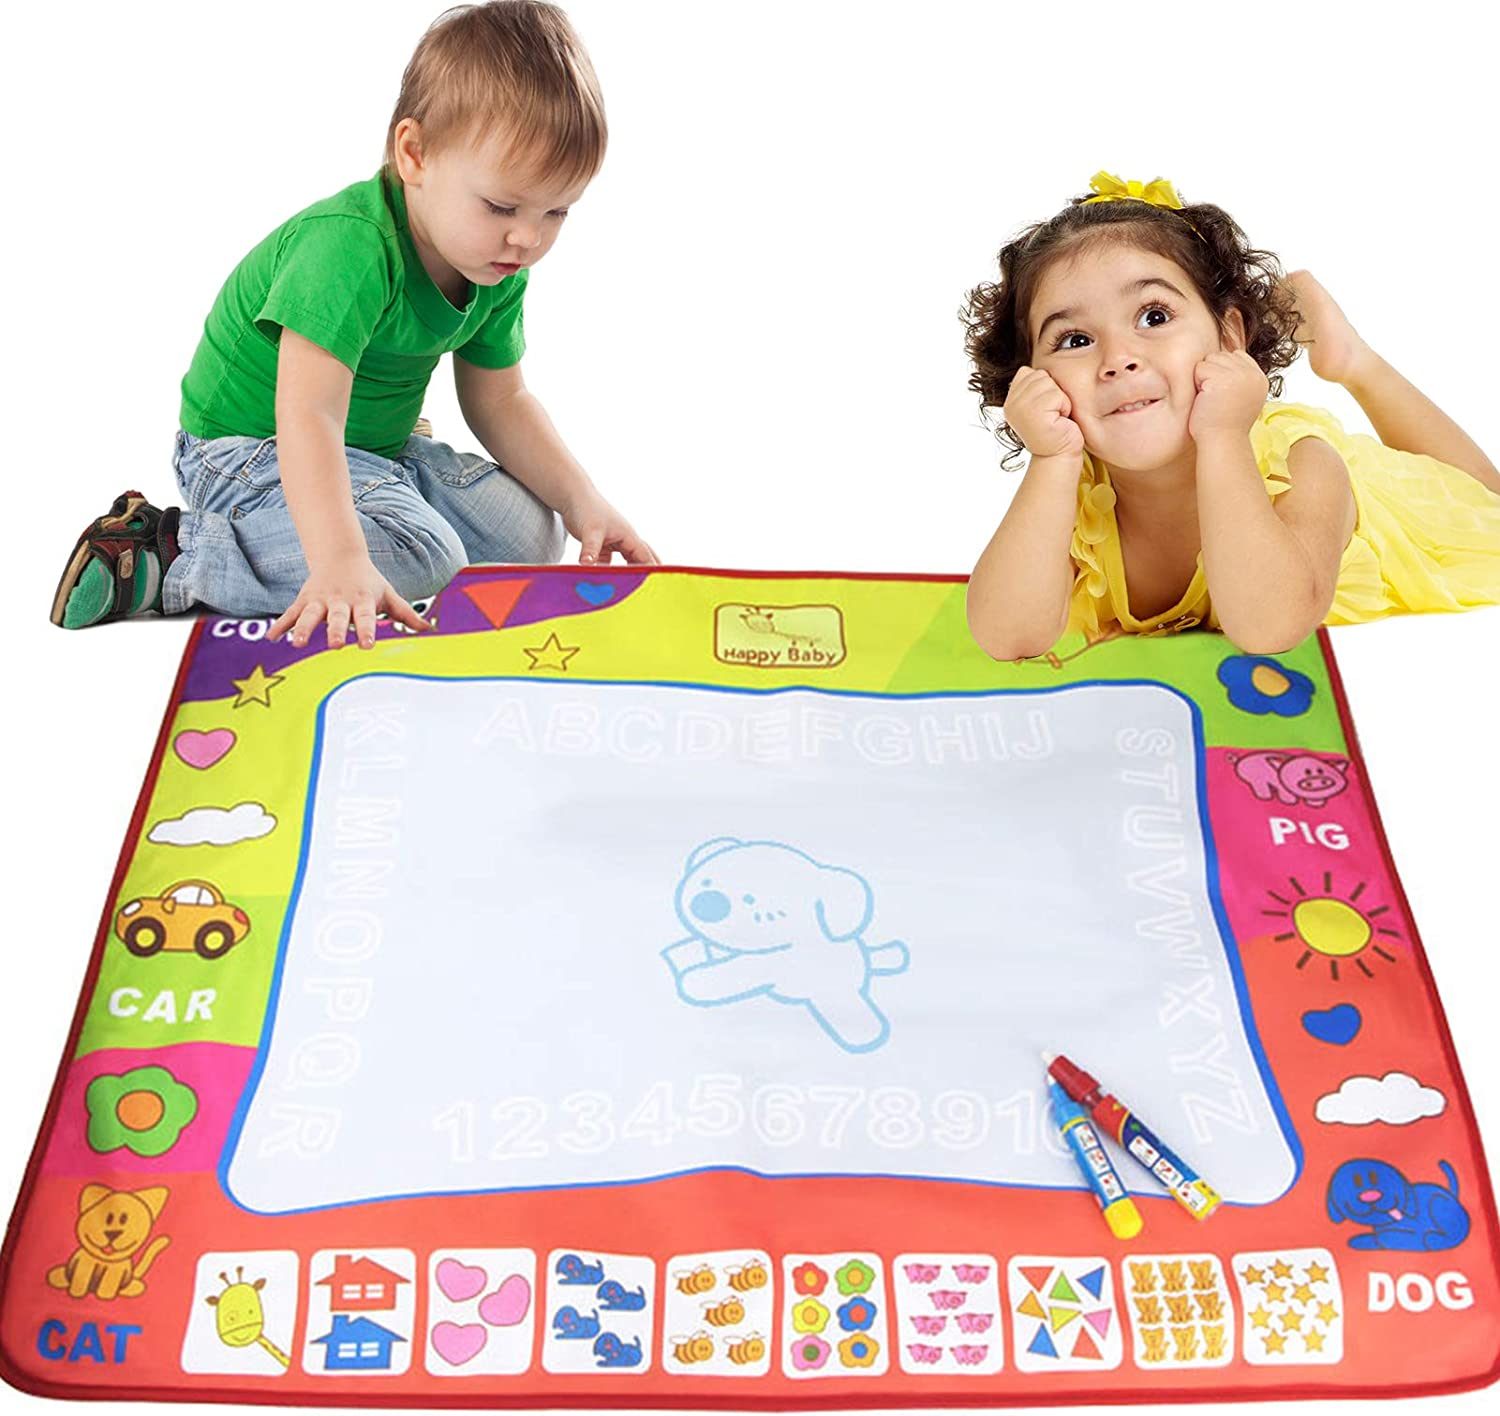 32x24inch 4 Color Water Writing Painting Board Reusable Large Mat with Portable Storage Bag and 2 Painting Pens for Age Over 3 Year Old Magic Doodle Drawing Mat for Kids